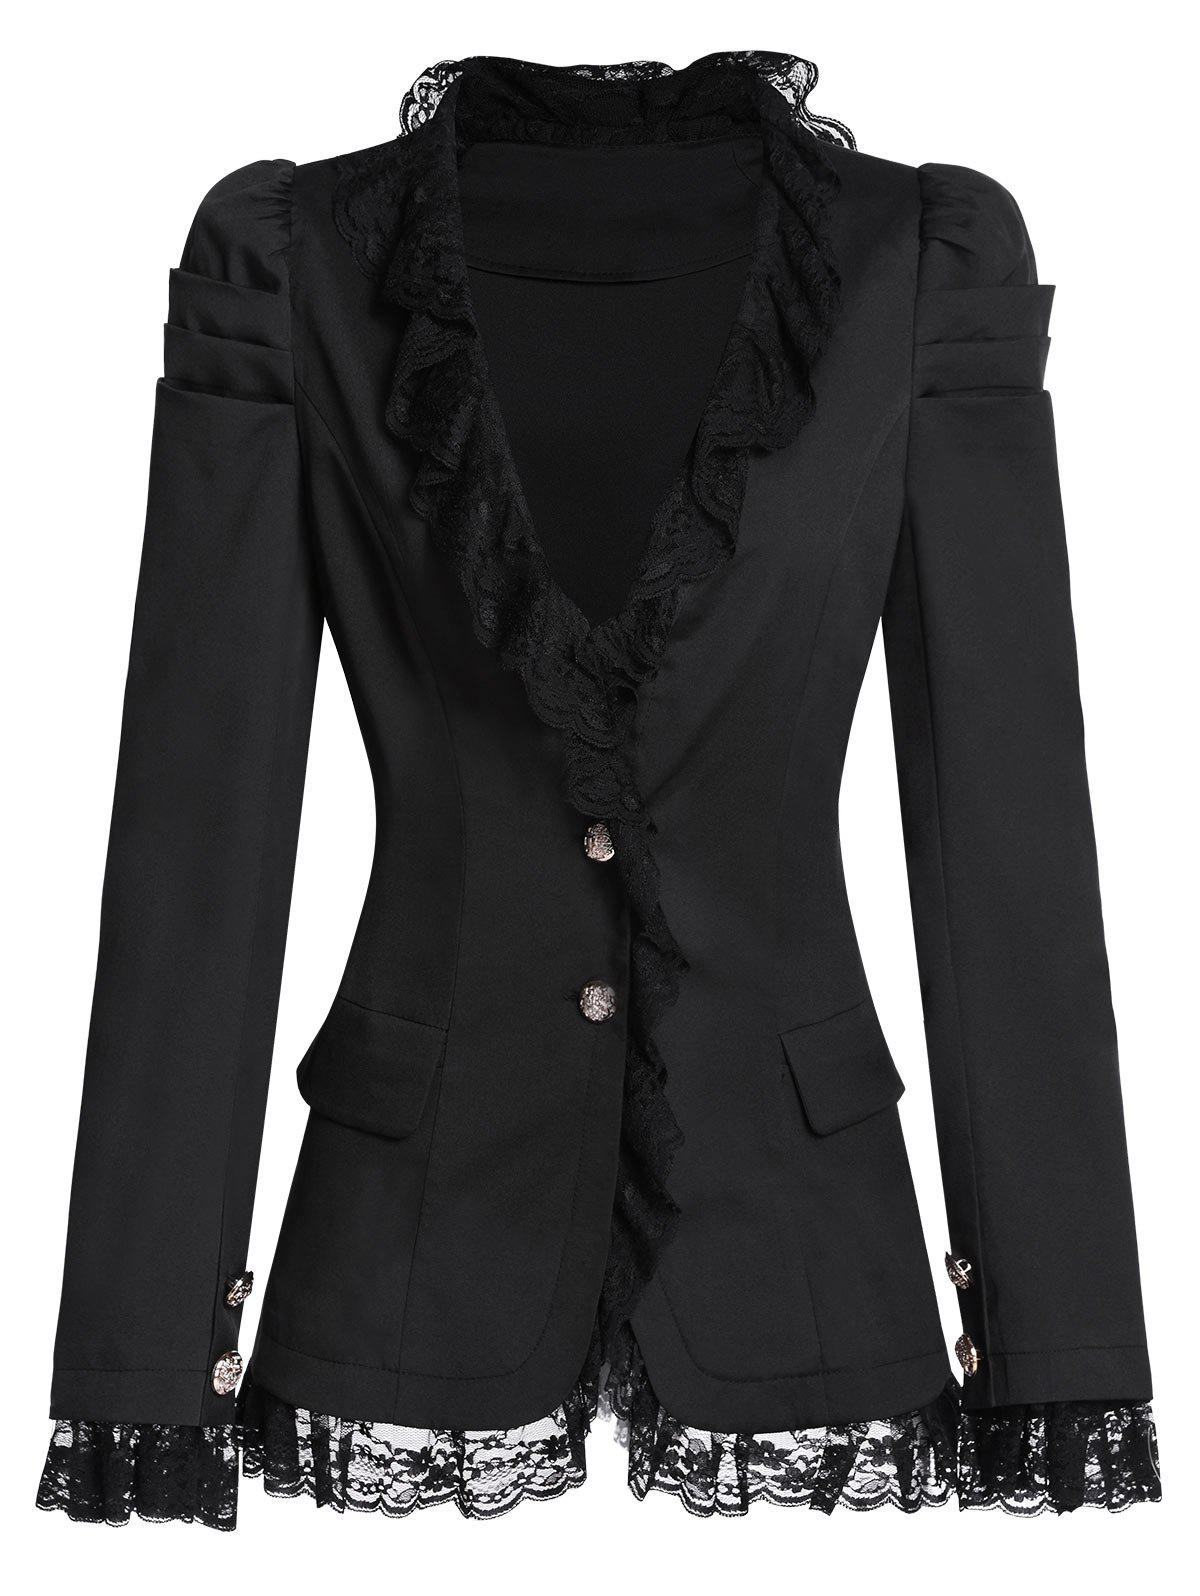 Lace Ruffled Two Button Lace Up Blazer Jacket - BLACK L